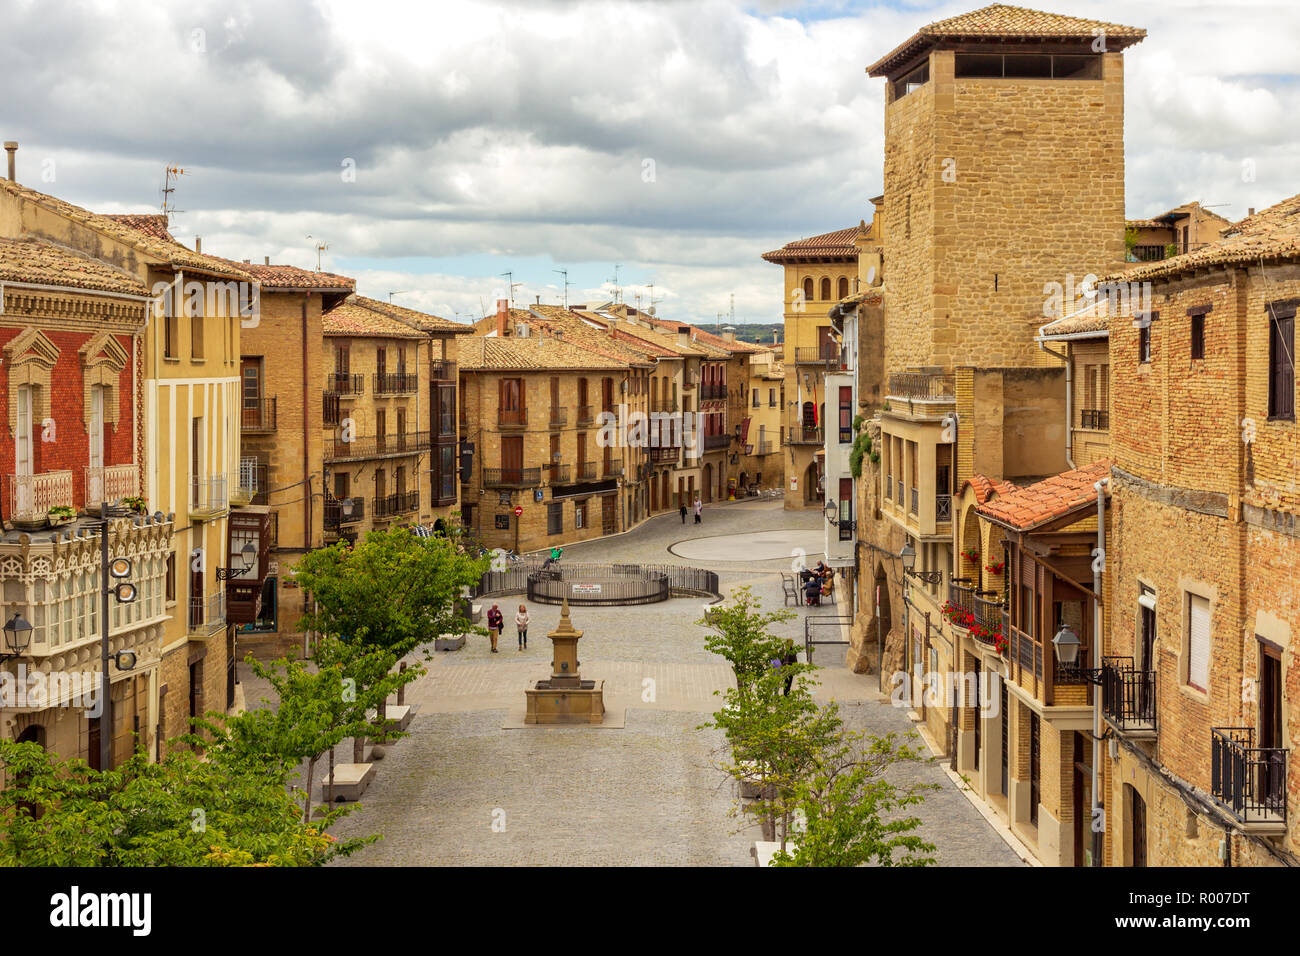 Main street in the Spanish medieval village of Olite, Navarre, Spain Stock Photo